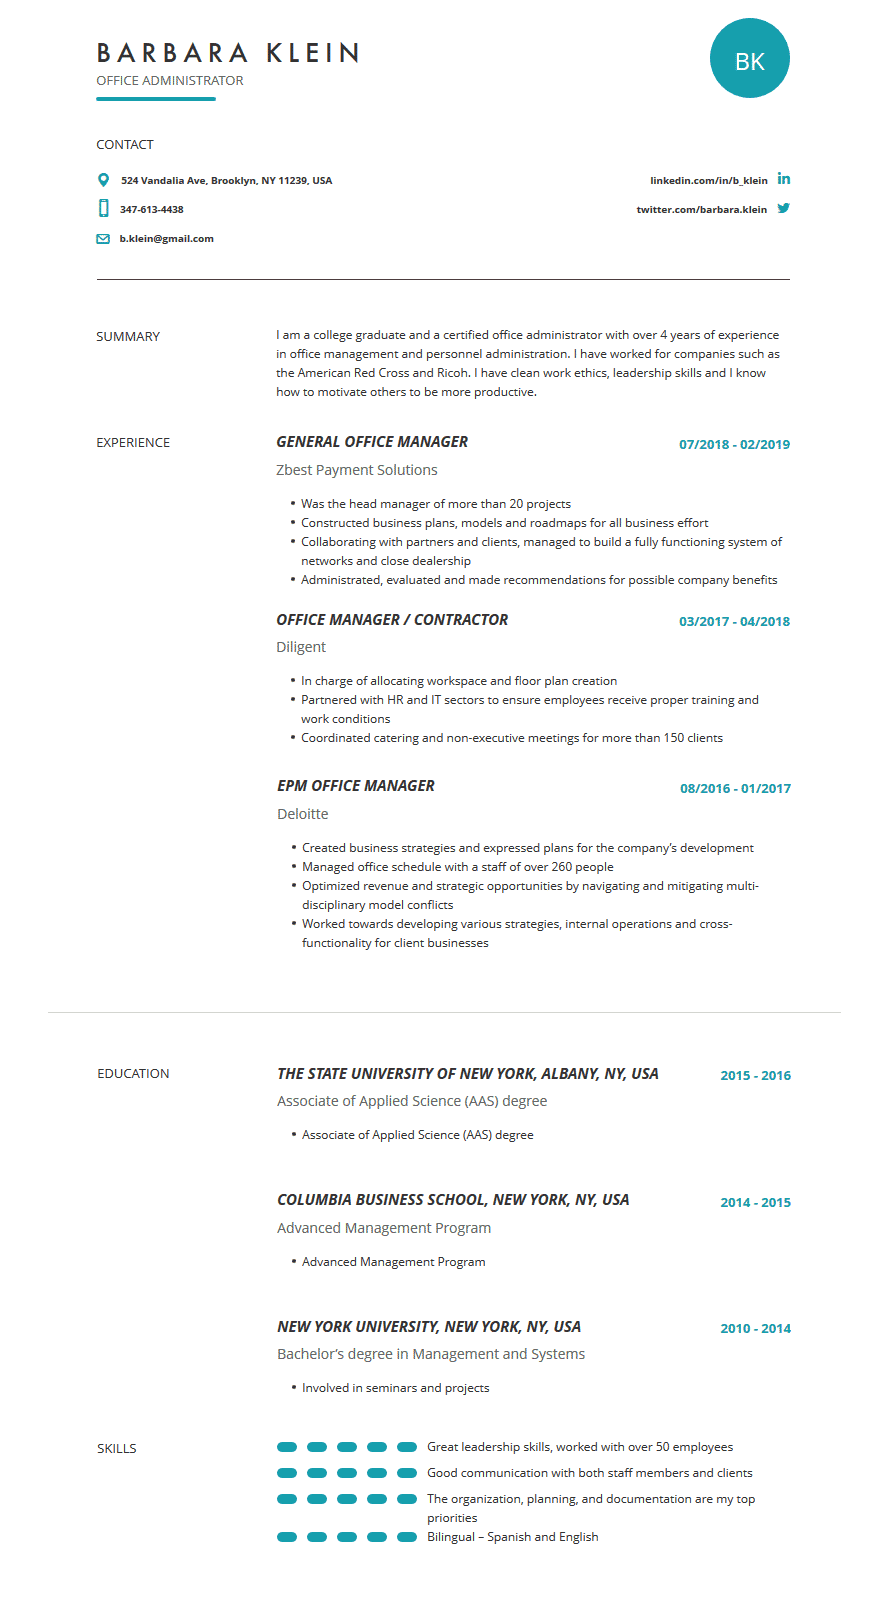 Office Manager Resume Template Examples Complete Guide Cleverism